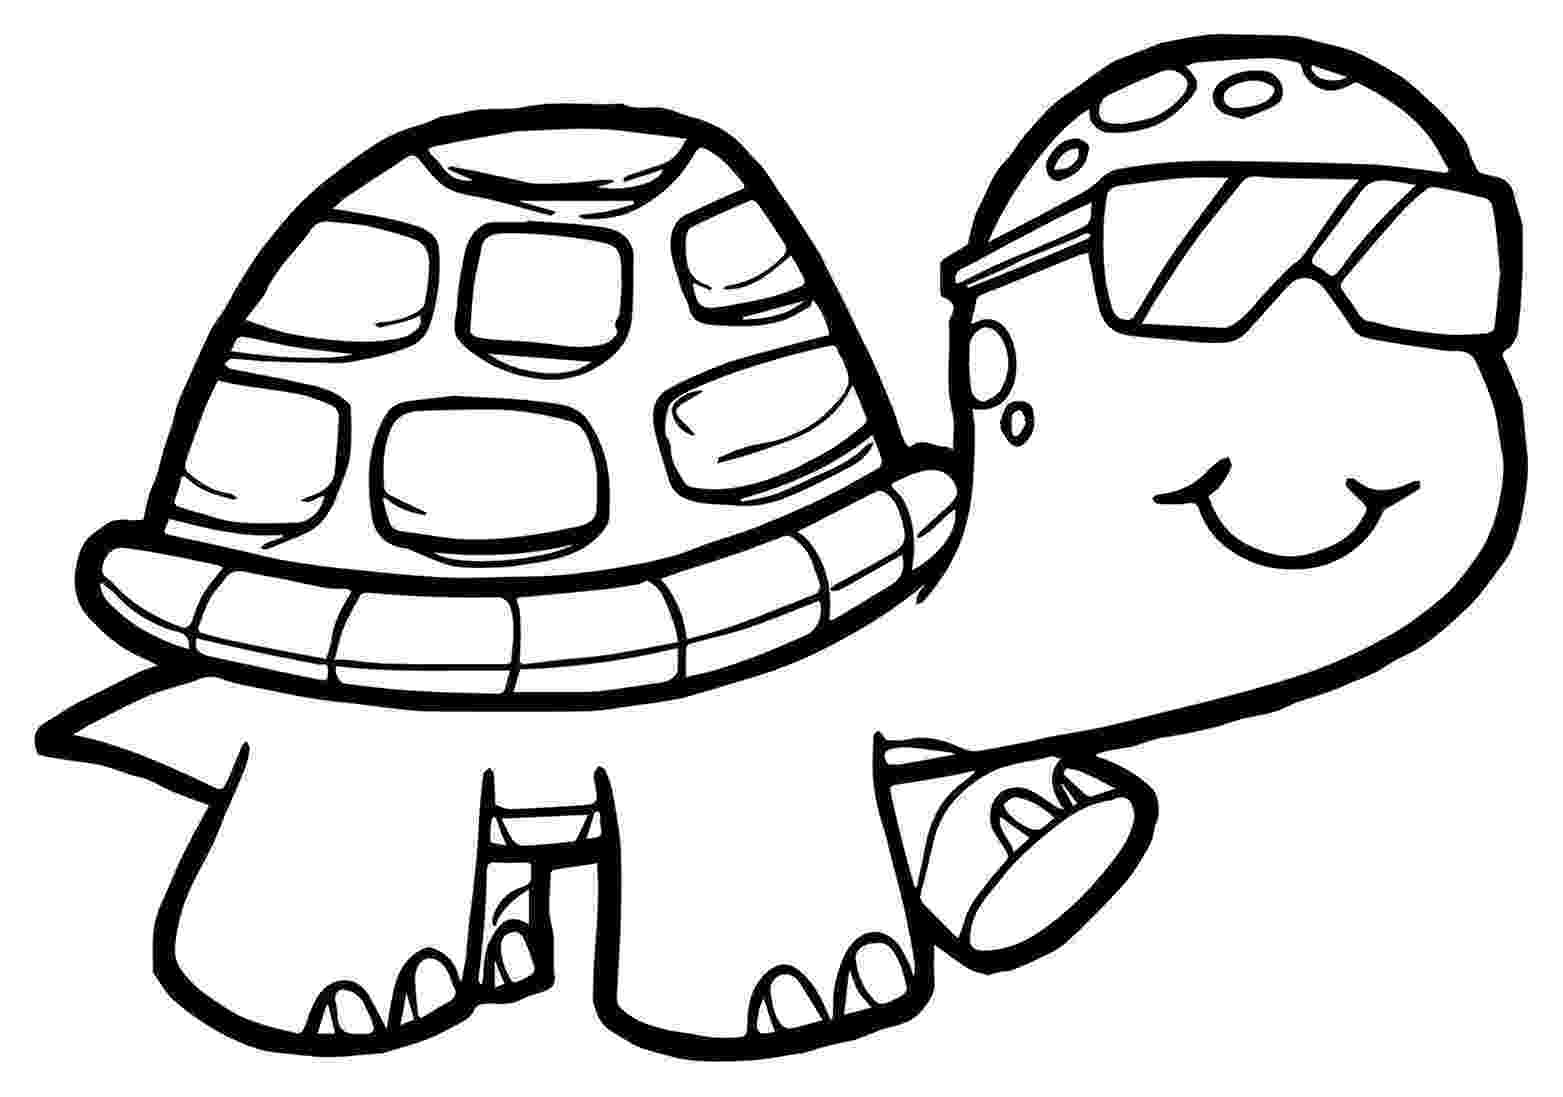 coloring pictures of turtles turtles to print for free turtles kids coloring pages pictures coloring of turtles